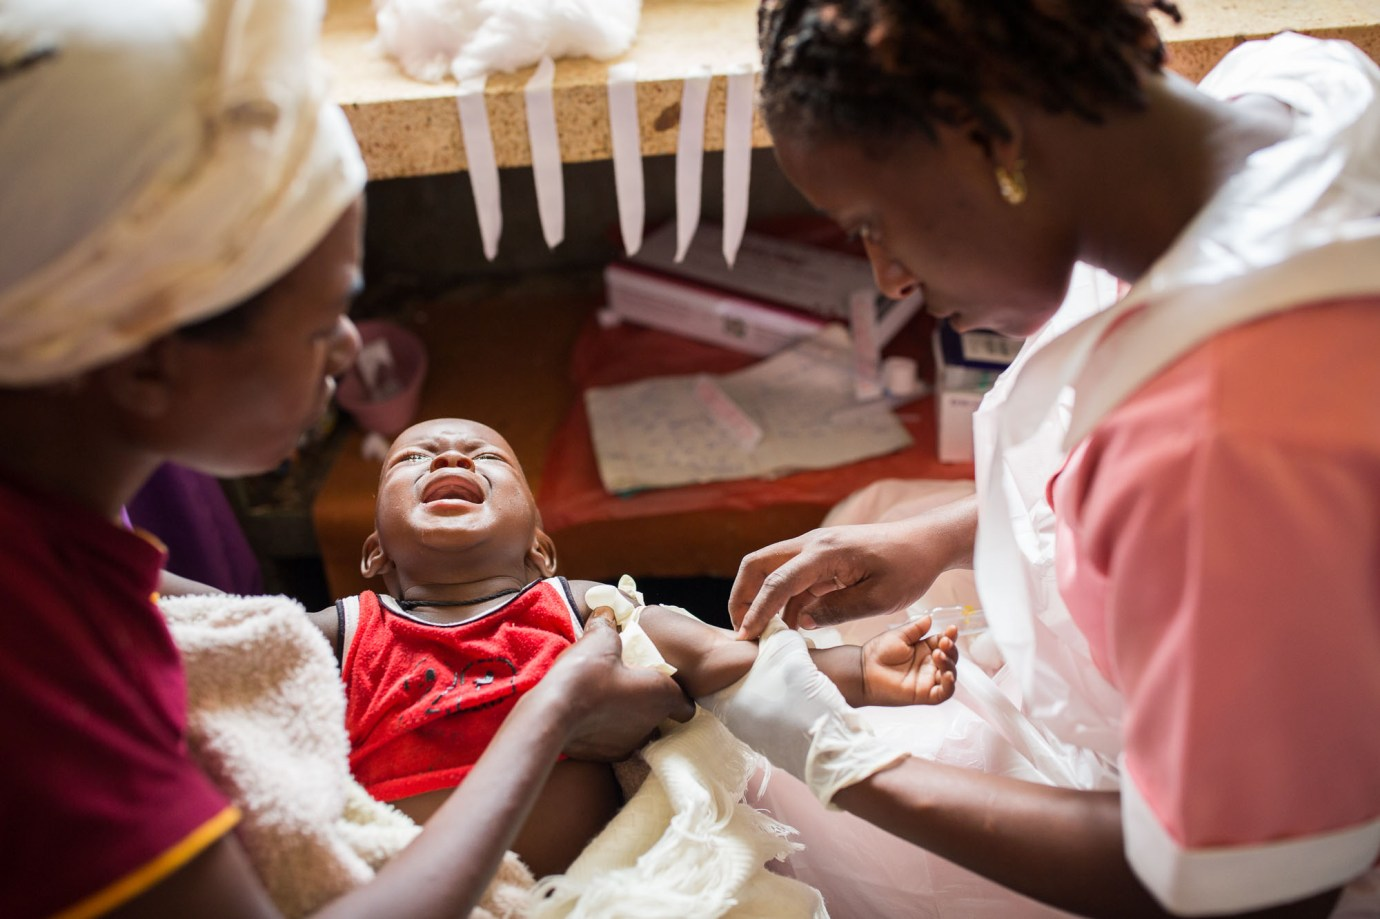 Seven-month-old Jjuma is treated for malaria at an underserved hospital in Bundibugyo, Uganda.